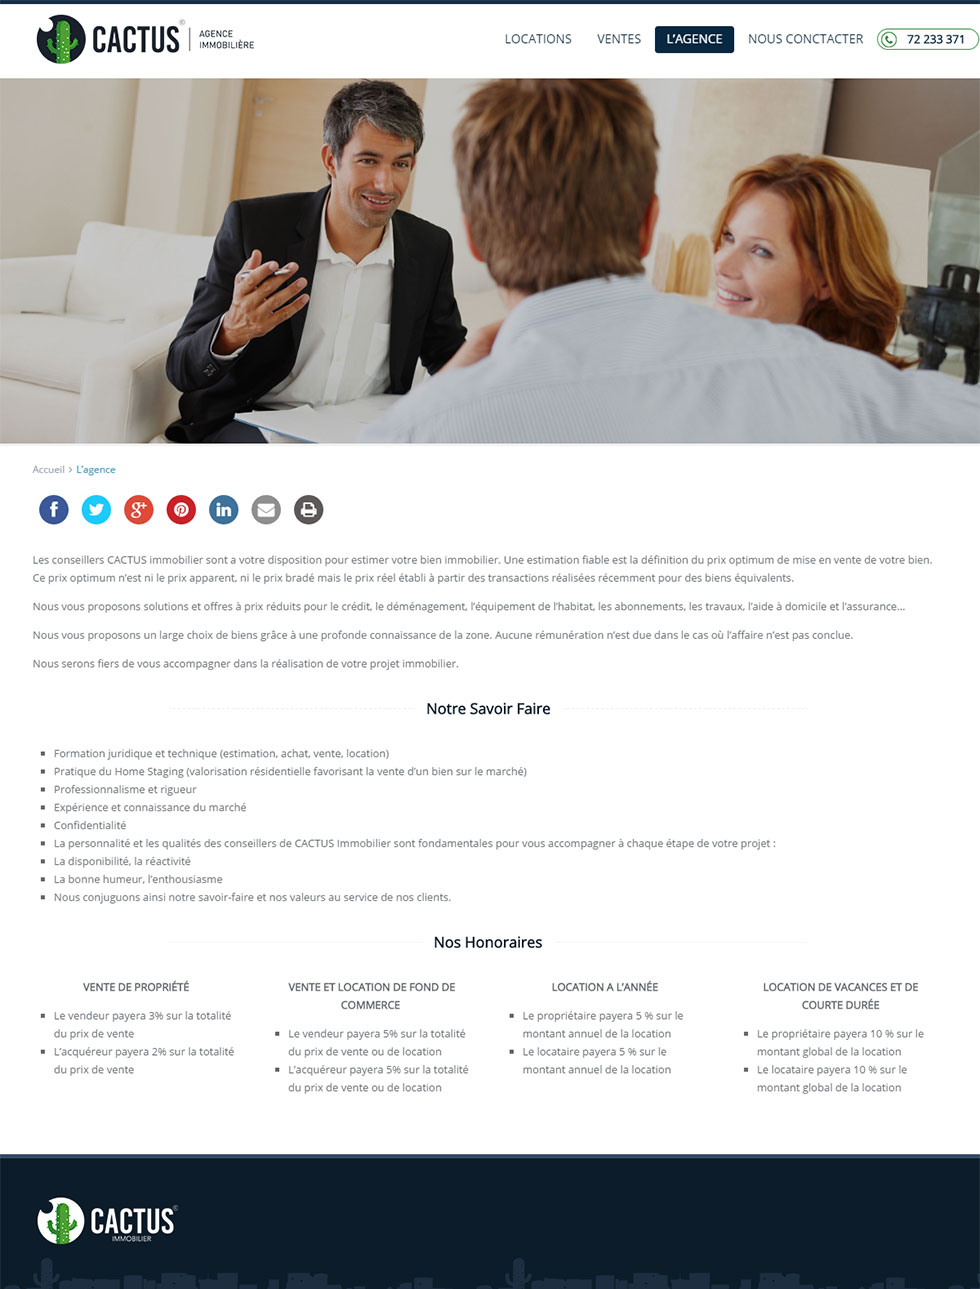 Webdesign Corporate, Cactus Immobilier, Agence Immobilière